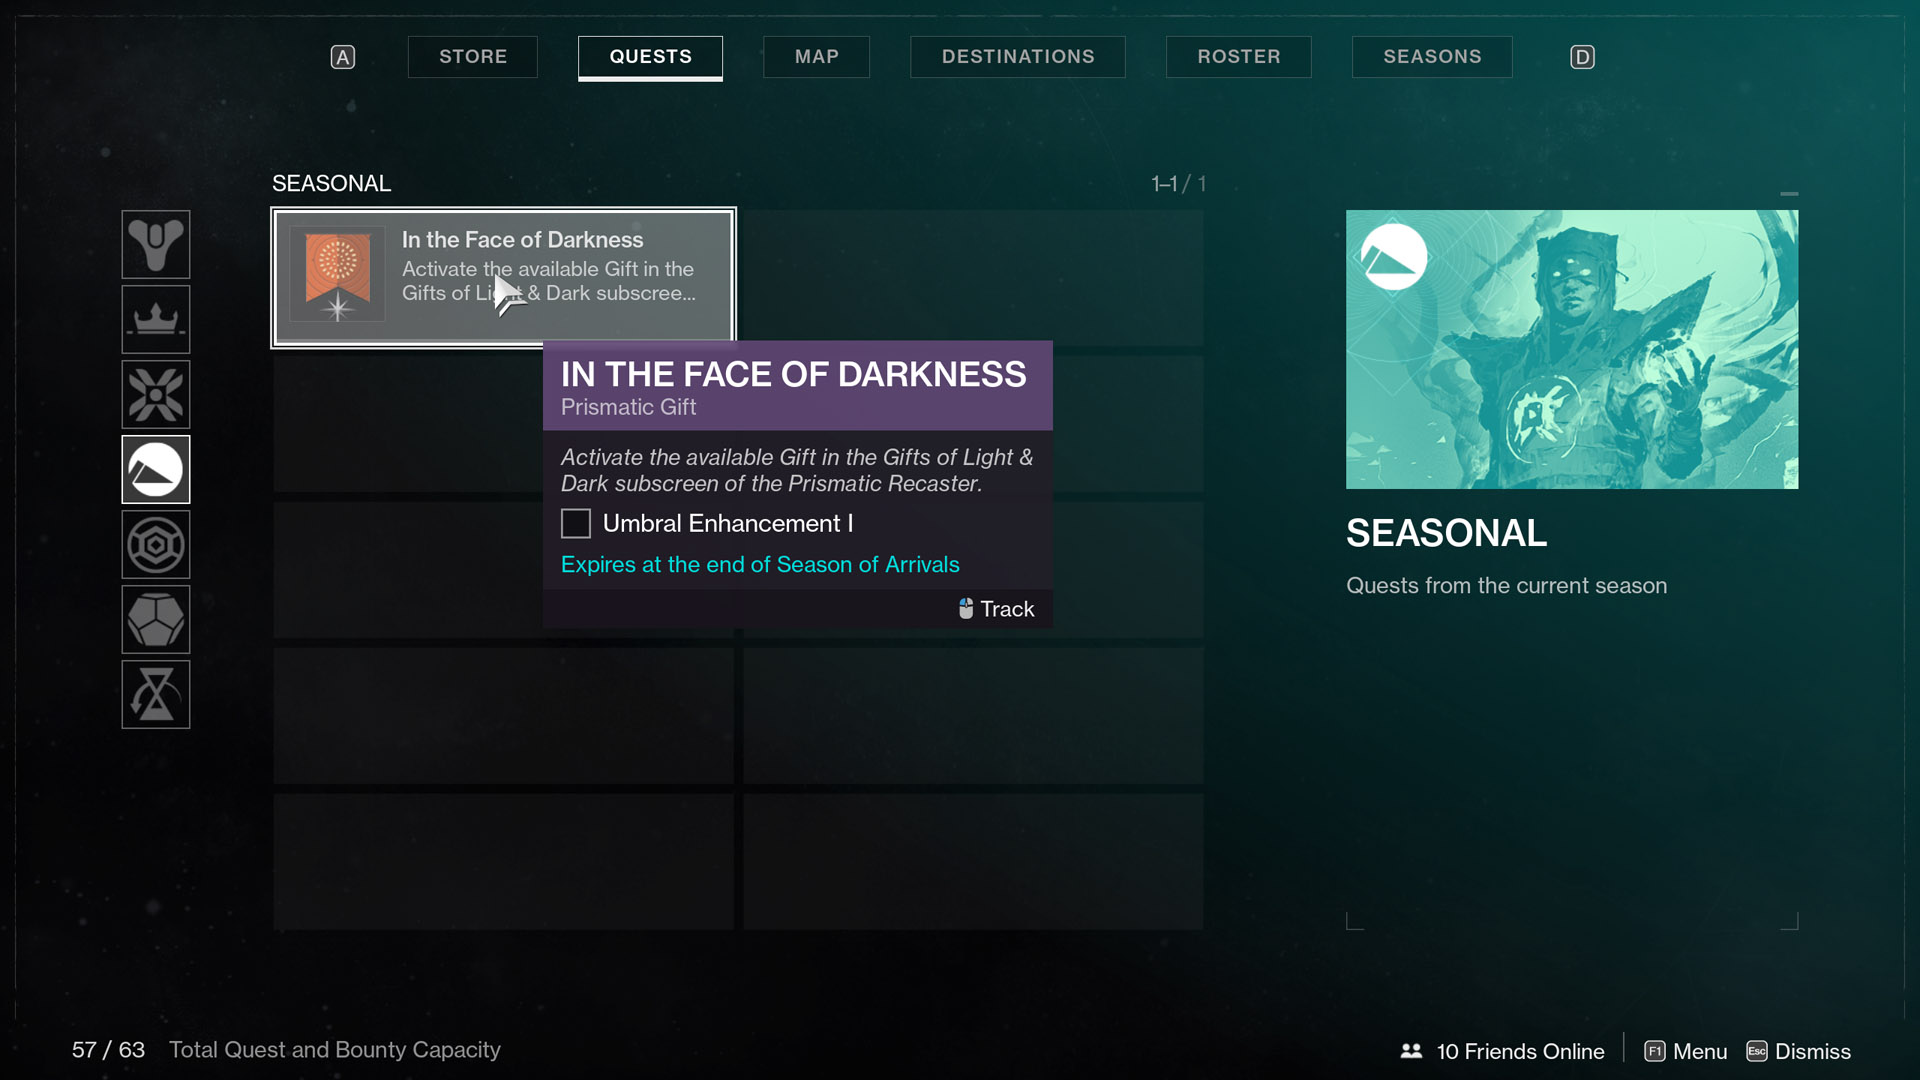 destiny 2 season of arrivals in the face of darkness Prismatic Gift